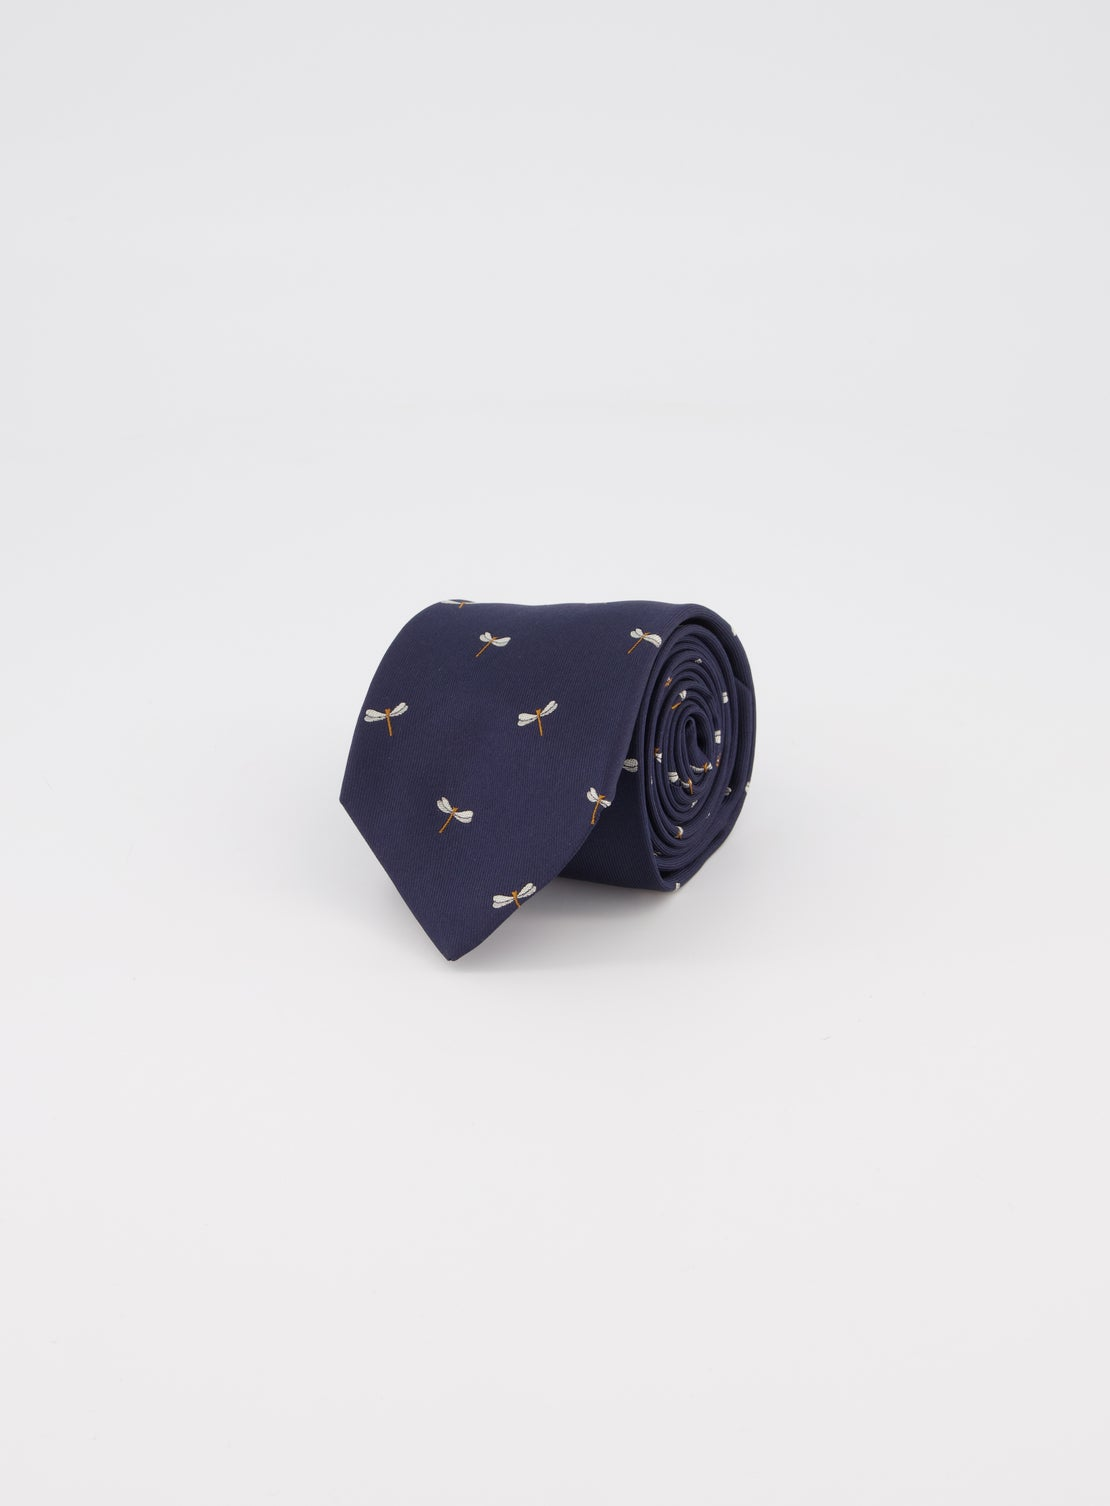 Navy with Dragonfly Design Tie